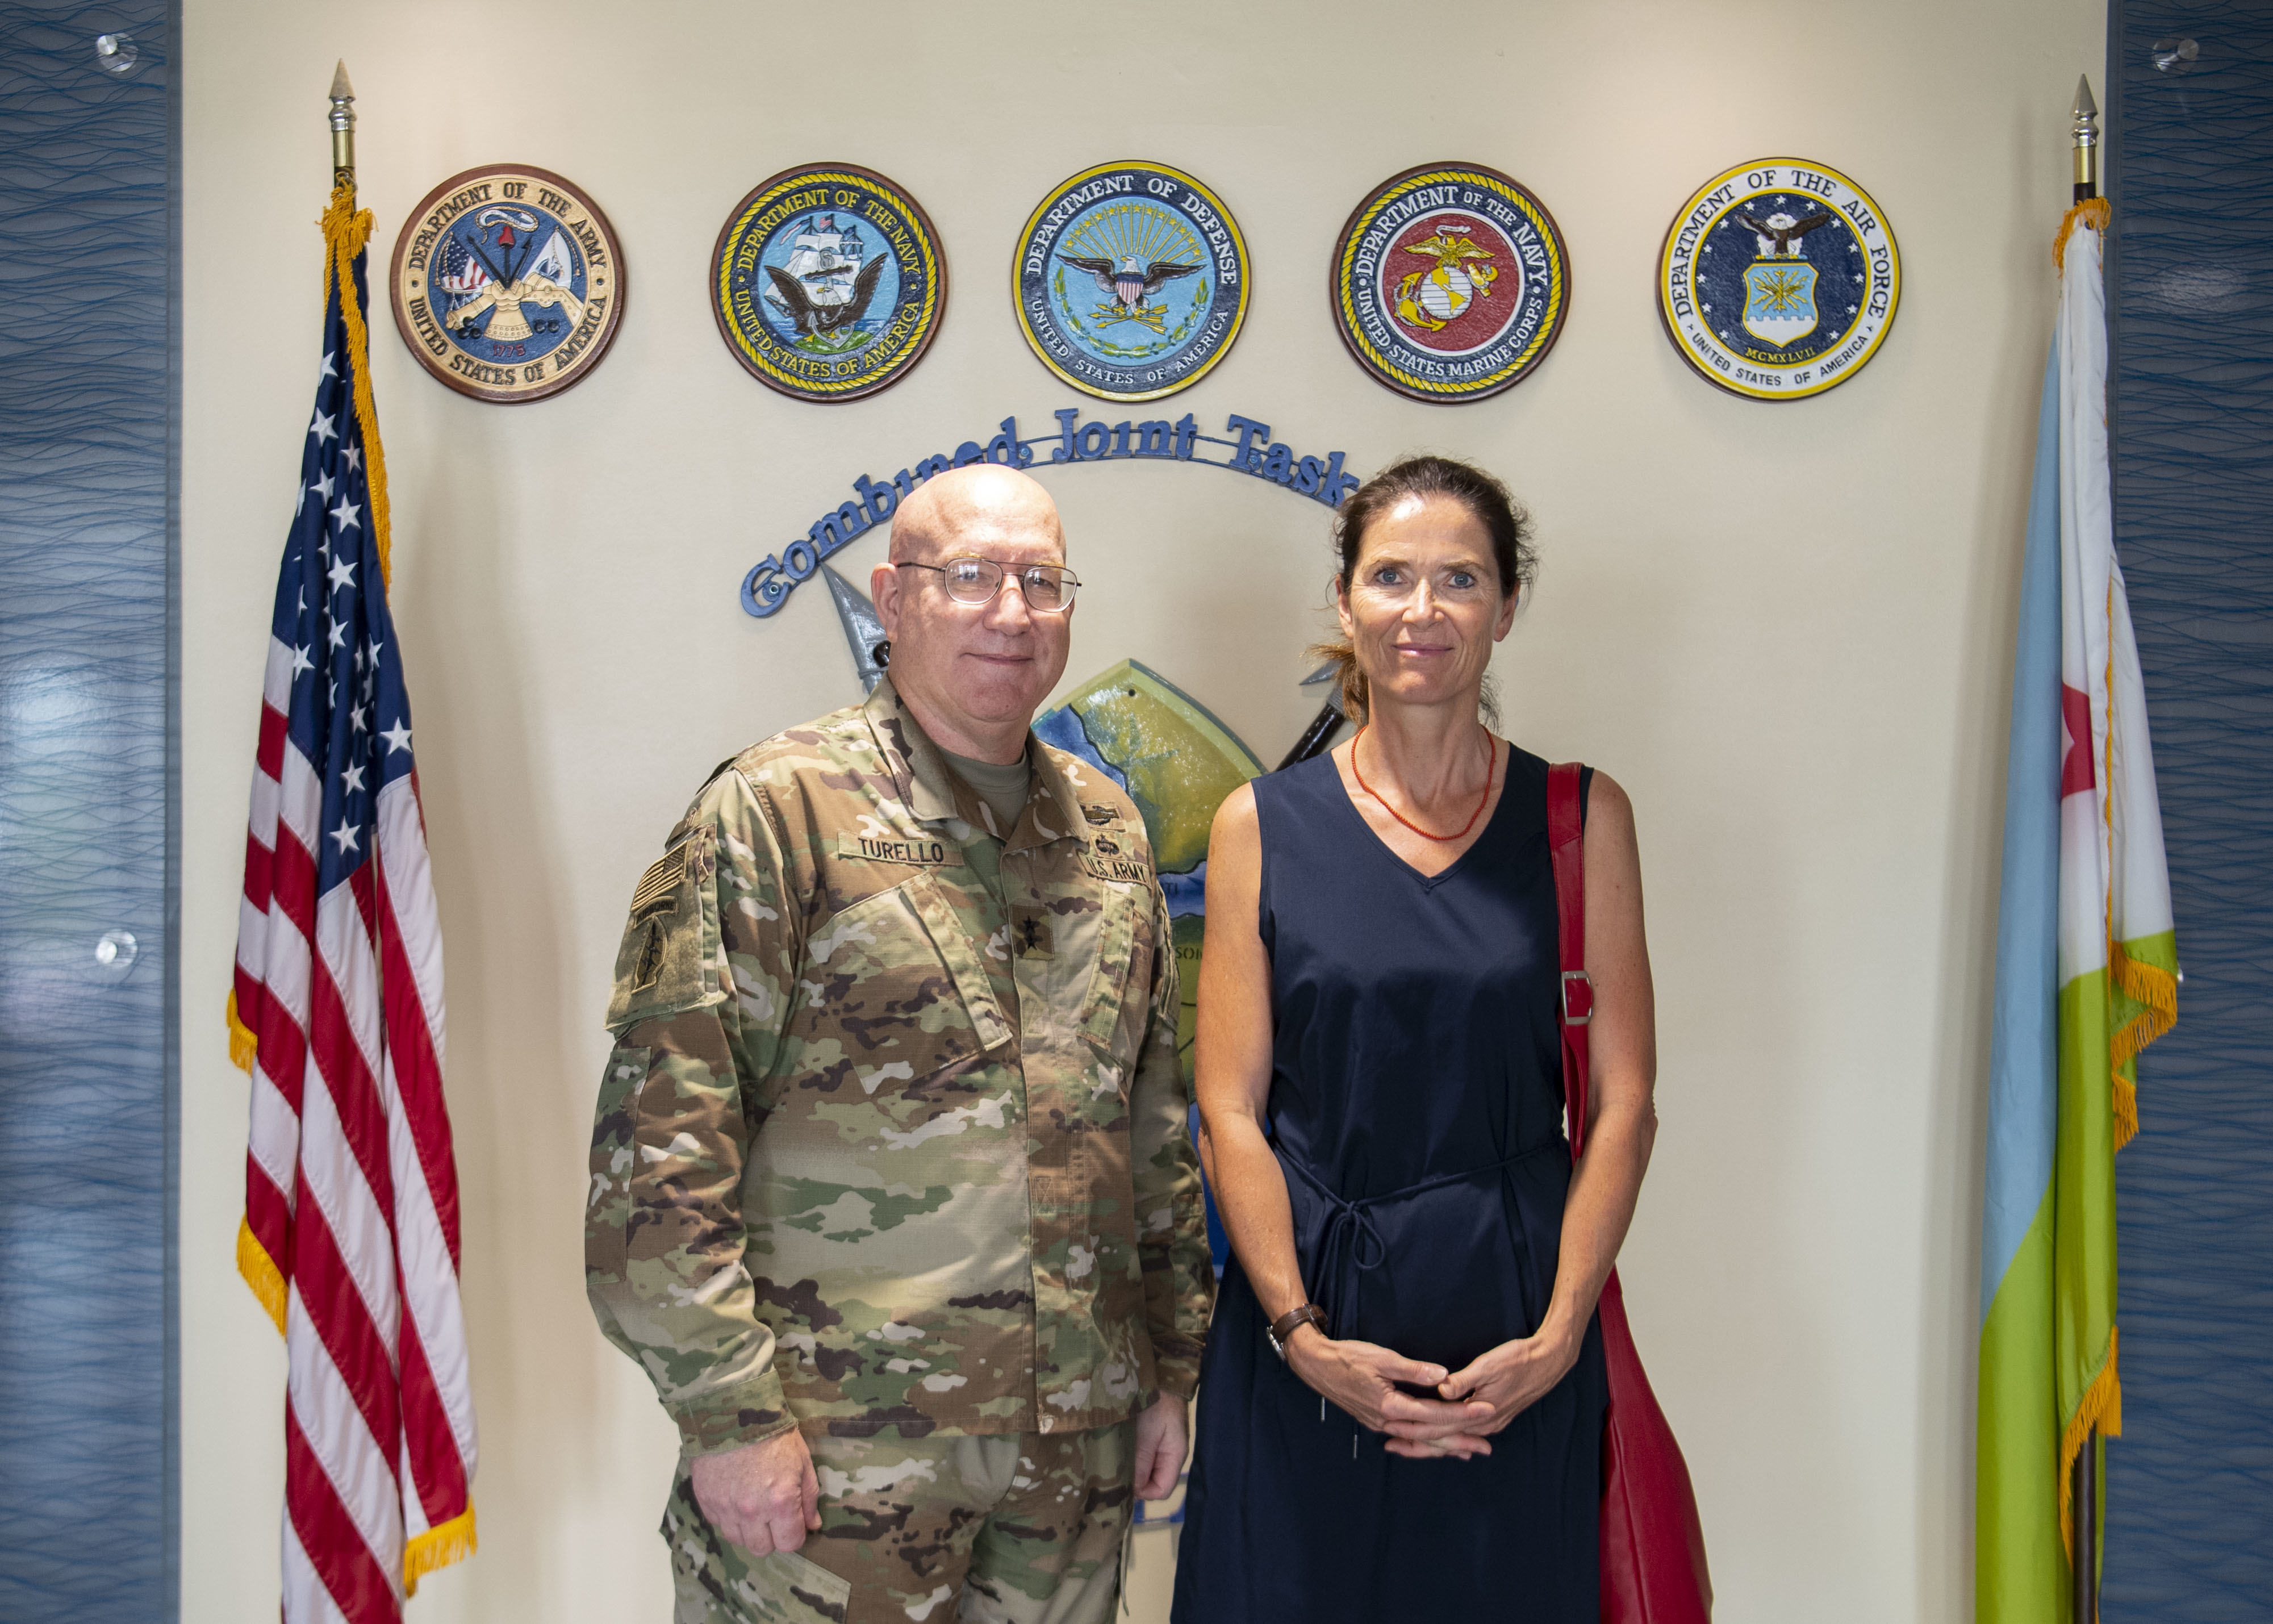 U.S. Army Maj. Gen. Michael D. Turello, commanding general of Combined Joint Task Force-Horn of Africa (CJTF-HOA), left, poses for a photo with Anke Holstein, Ambassador of Germany to Djibouti, at Camp Lemonnier, Djibouti, July 3, 2019. While visiting Camp Lemonnier, Holstein learned about the CJTF-HOA mission and toured the installation. (U.S. Air Force photo by Staff Sgt. J.D. Strong II)